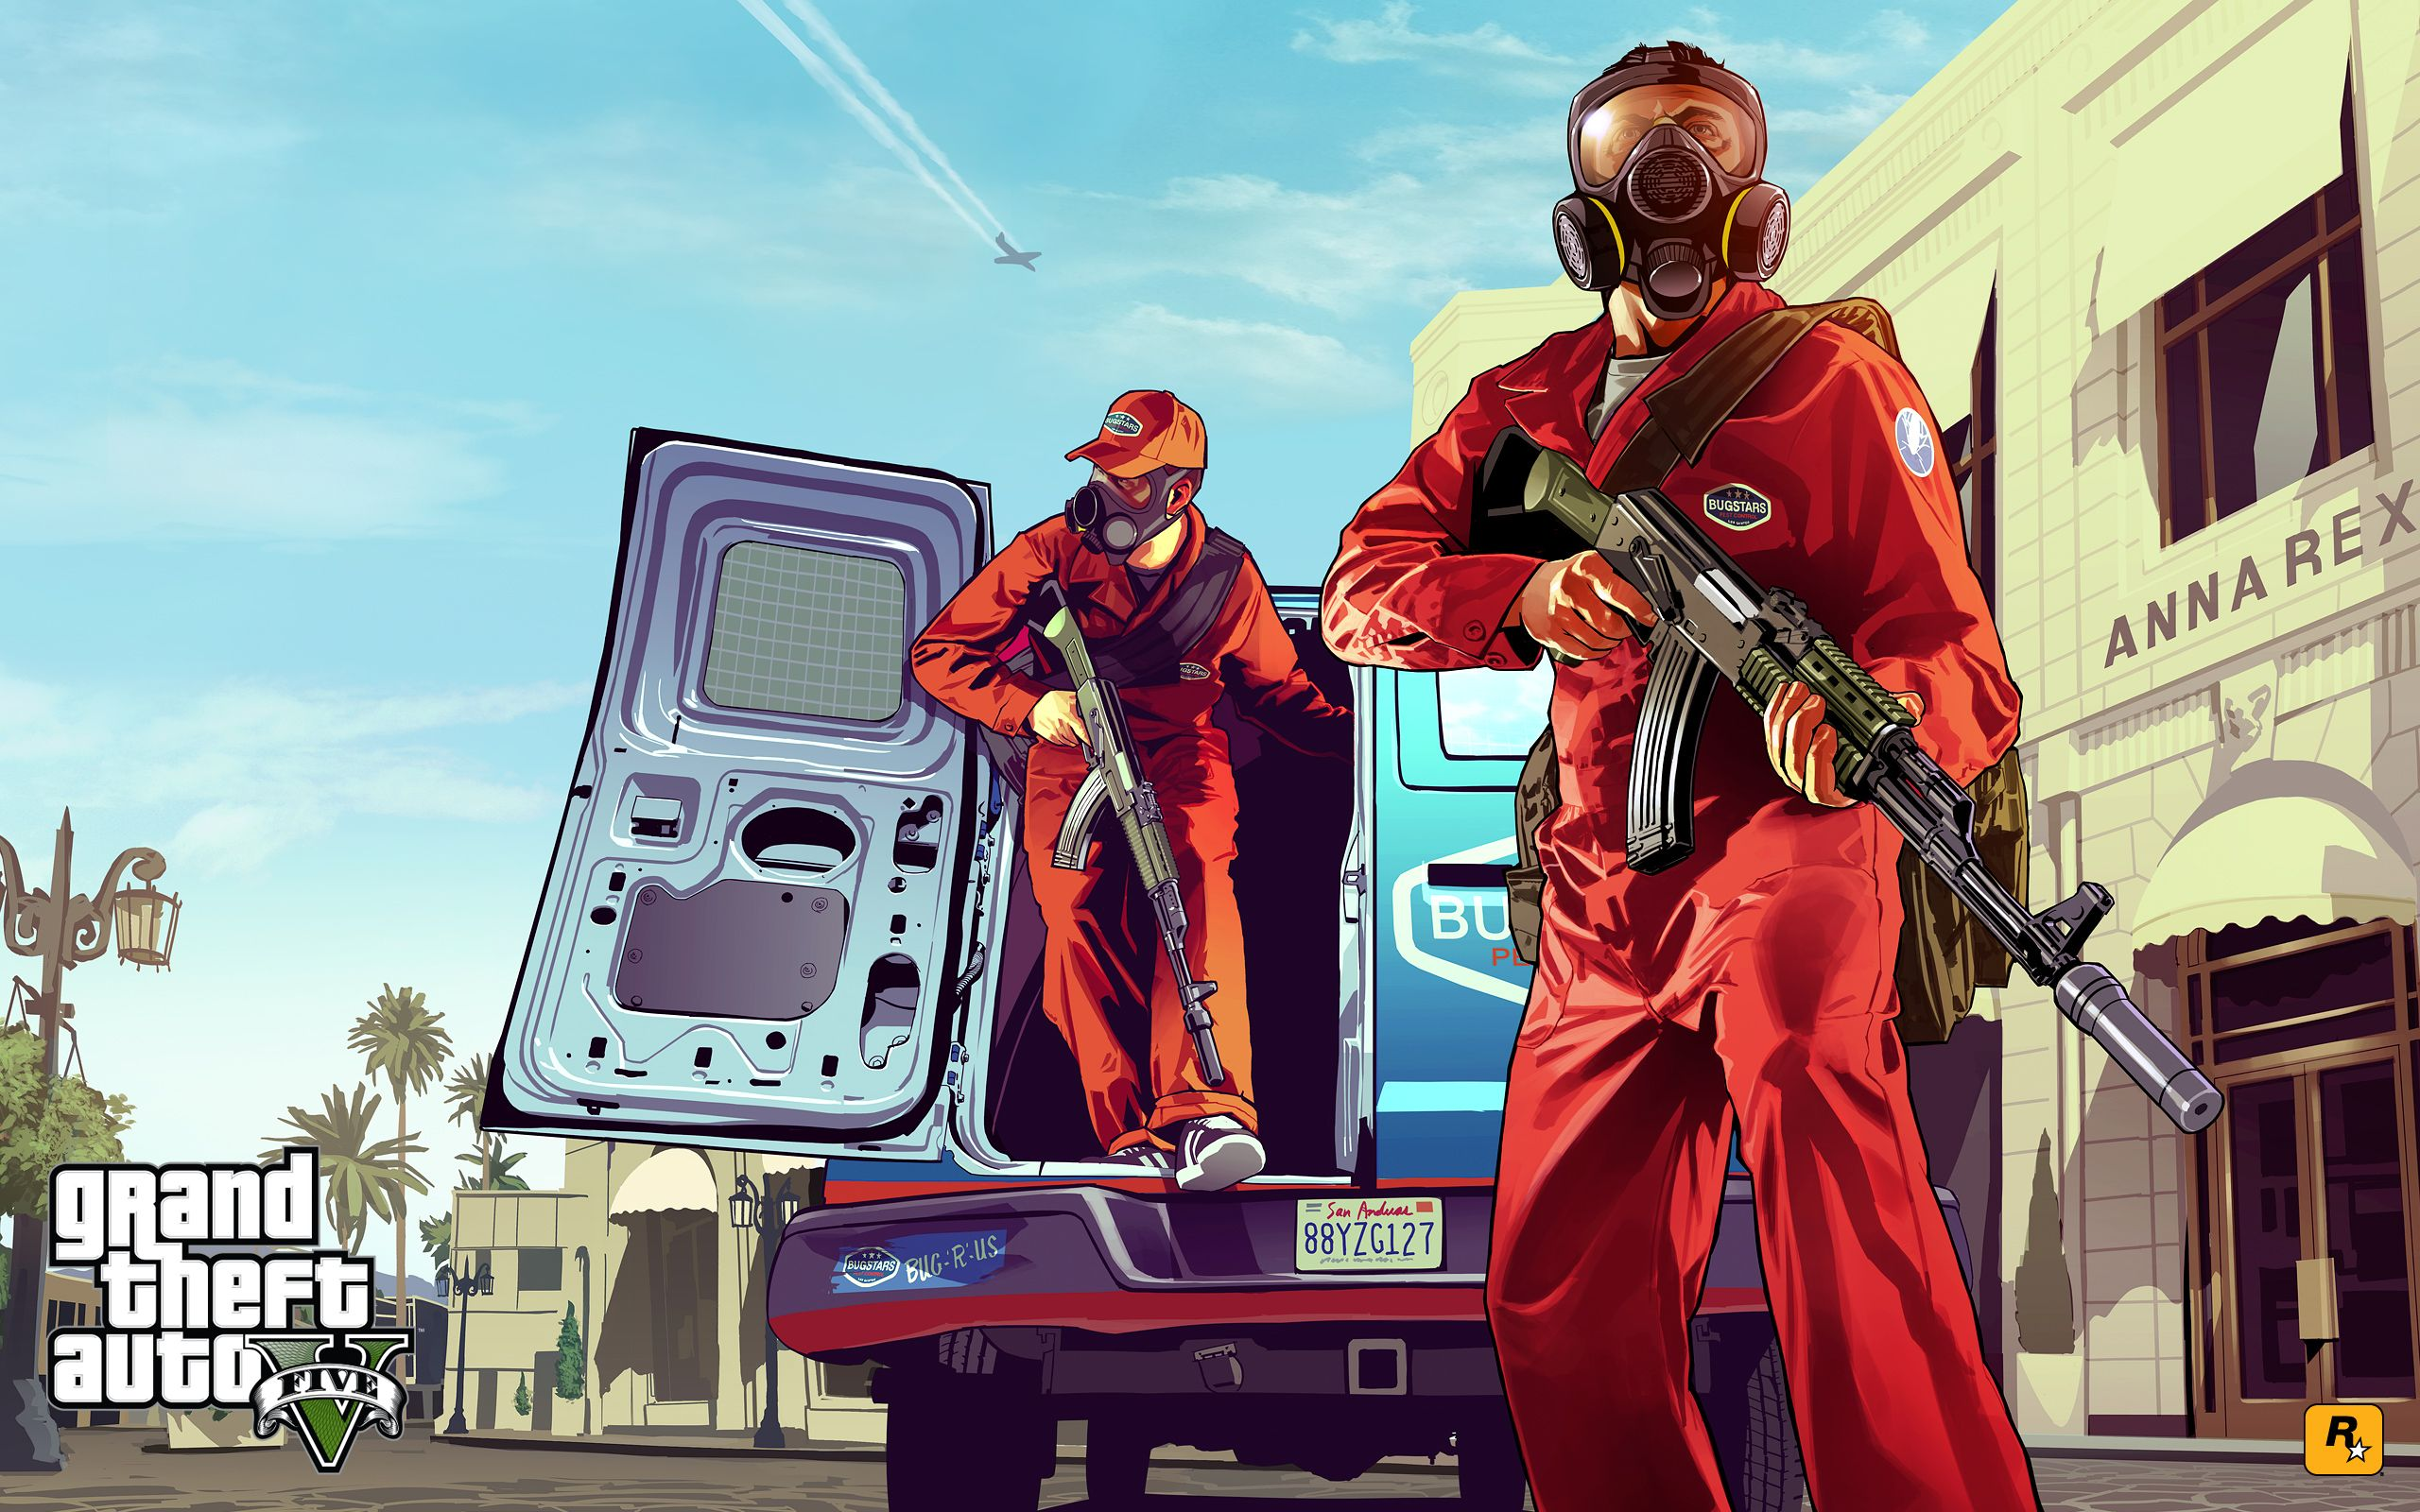 grand theft auto gta v wide 2560x1600